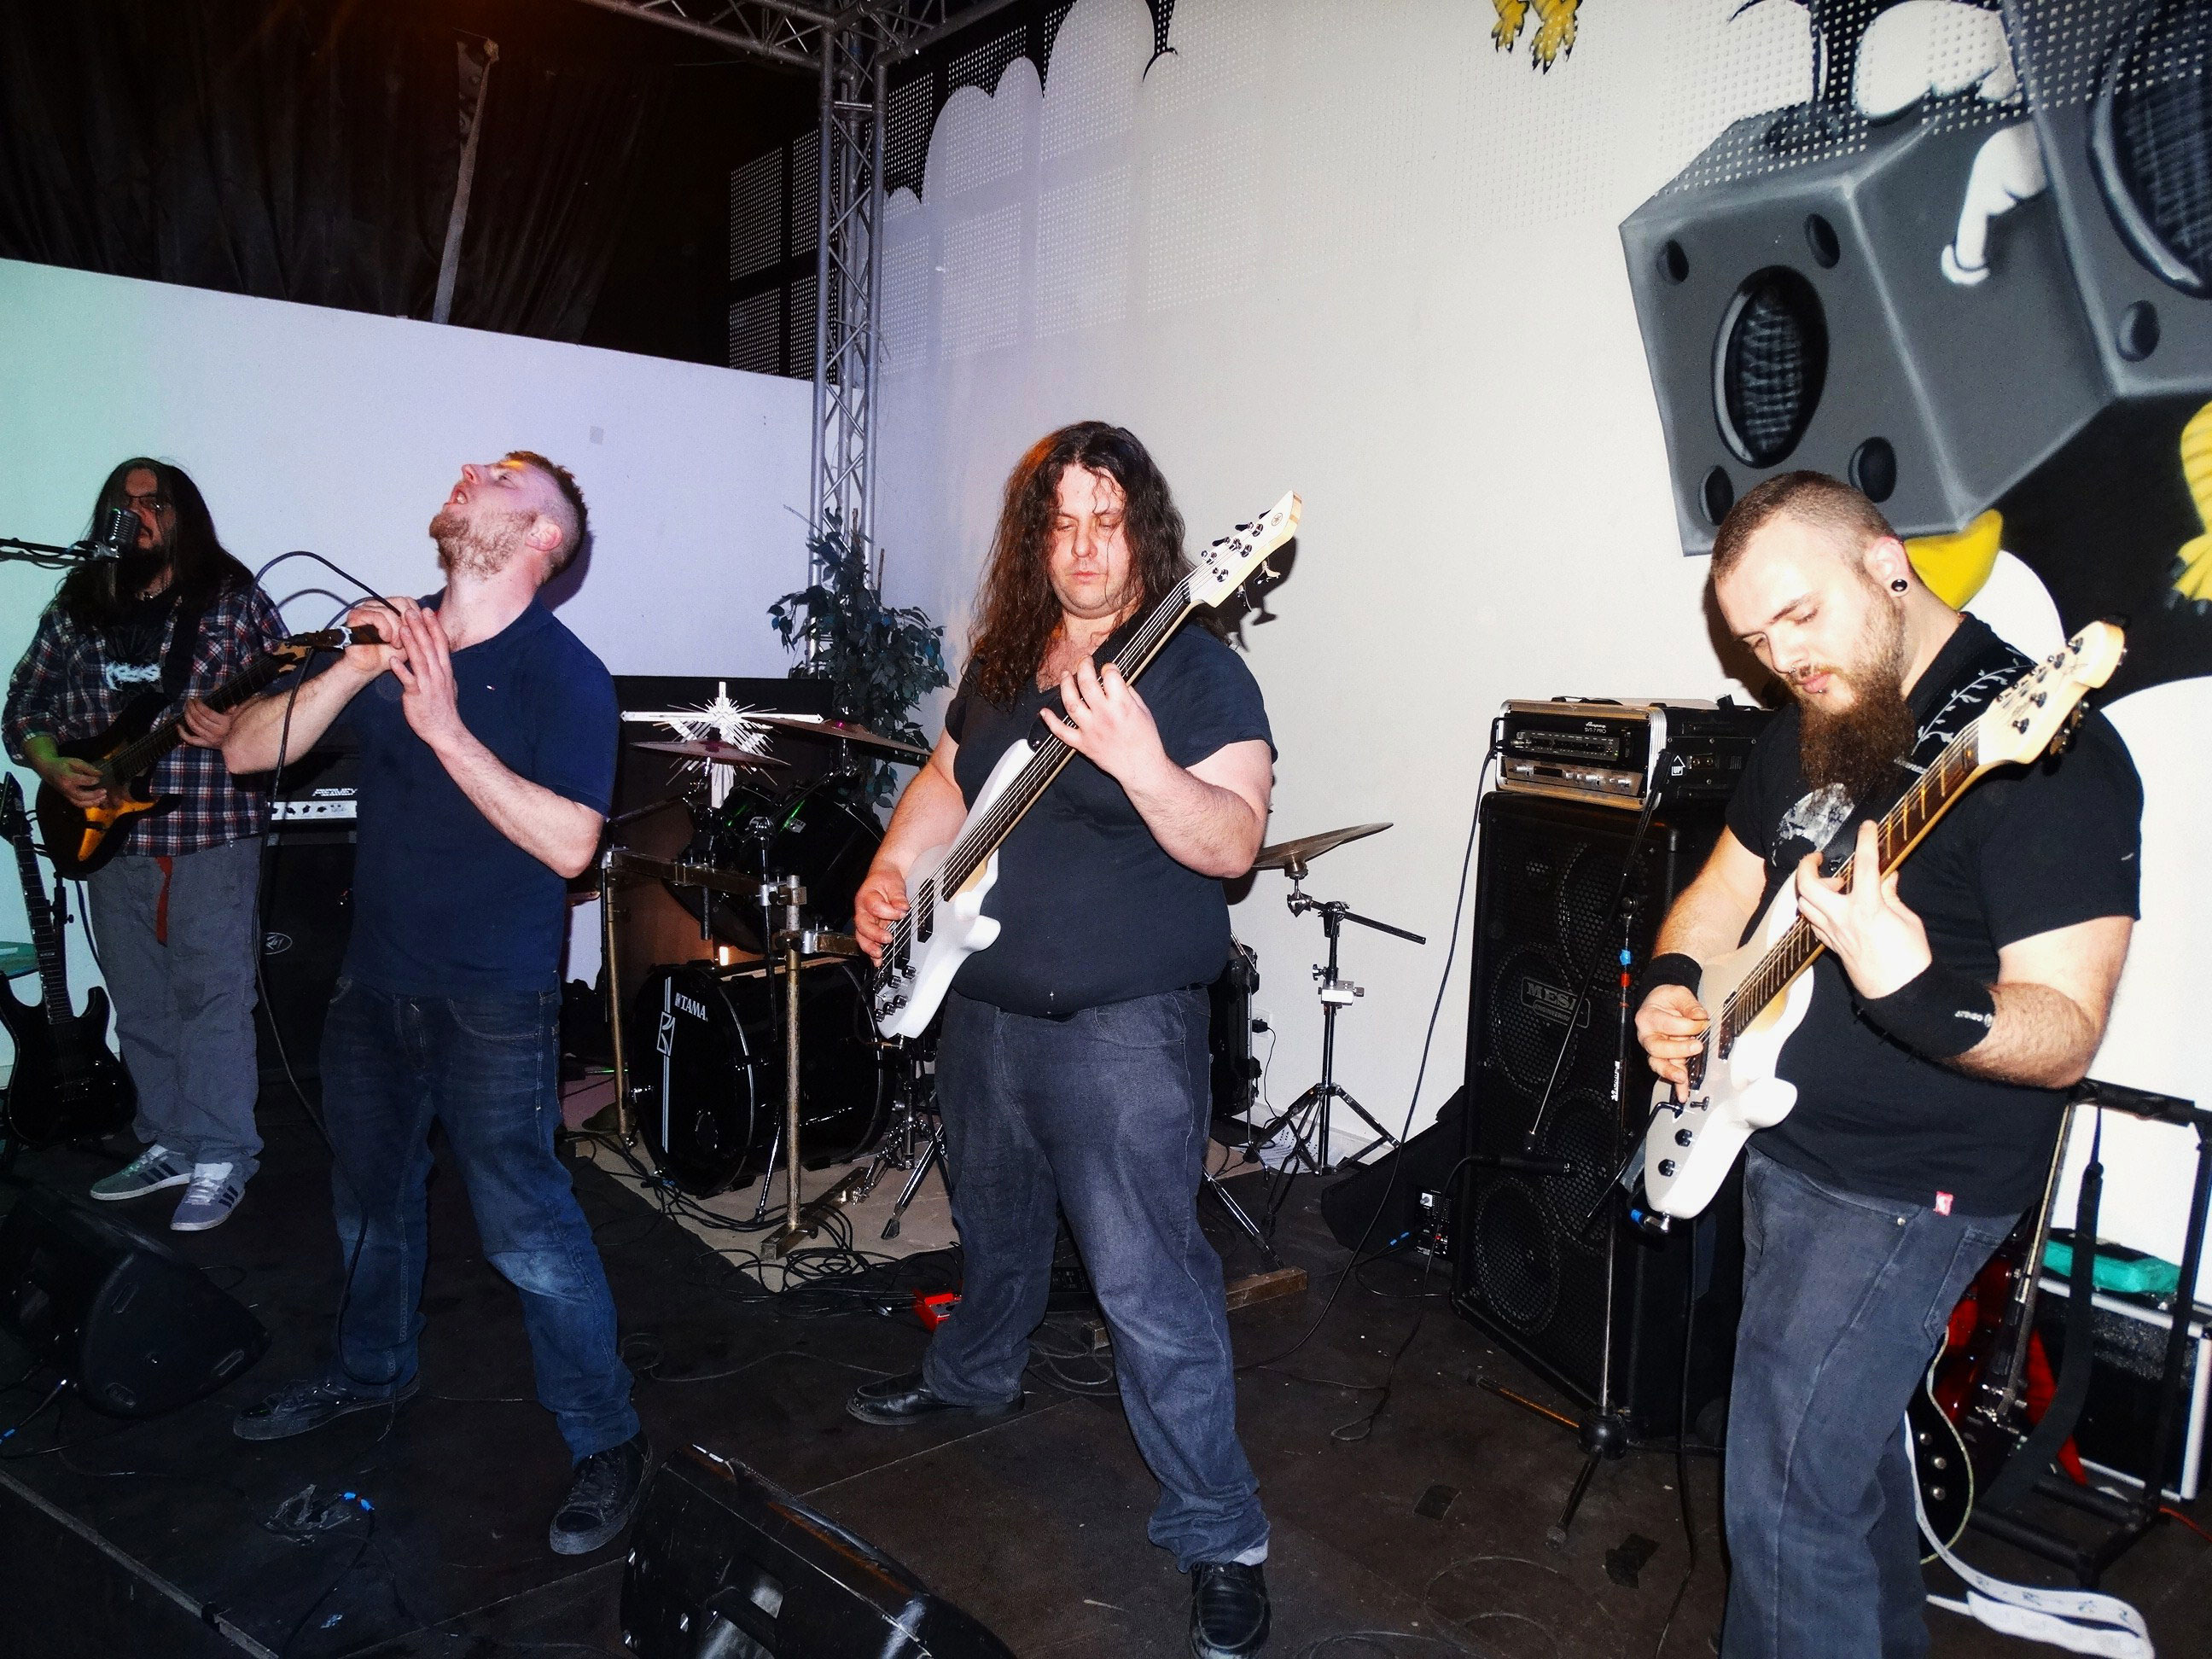 Fall Back to Zero - Chez Drey, Seynod, 27/02/2016